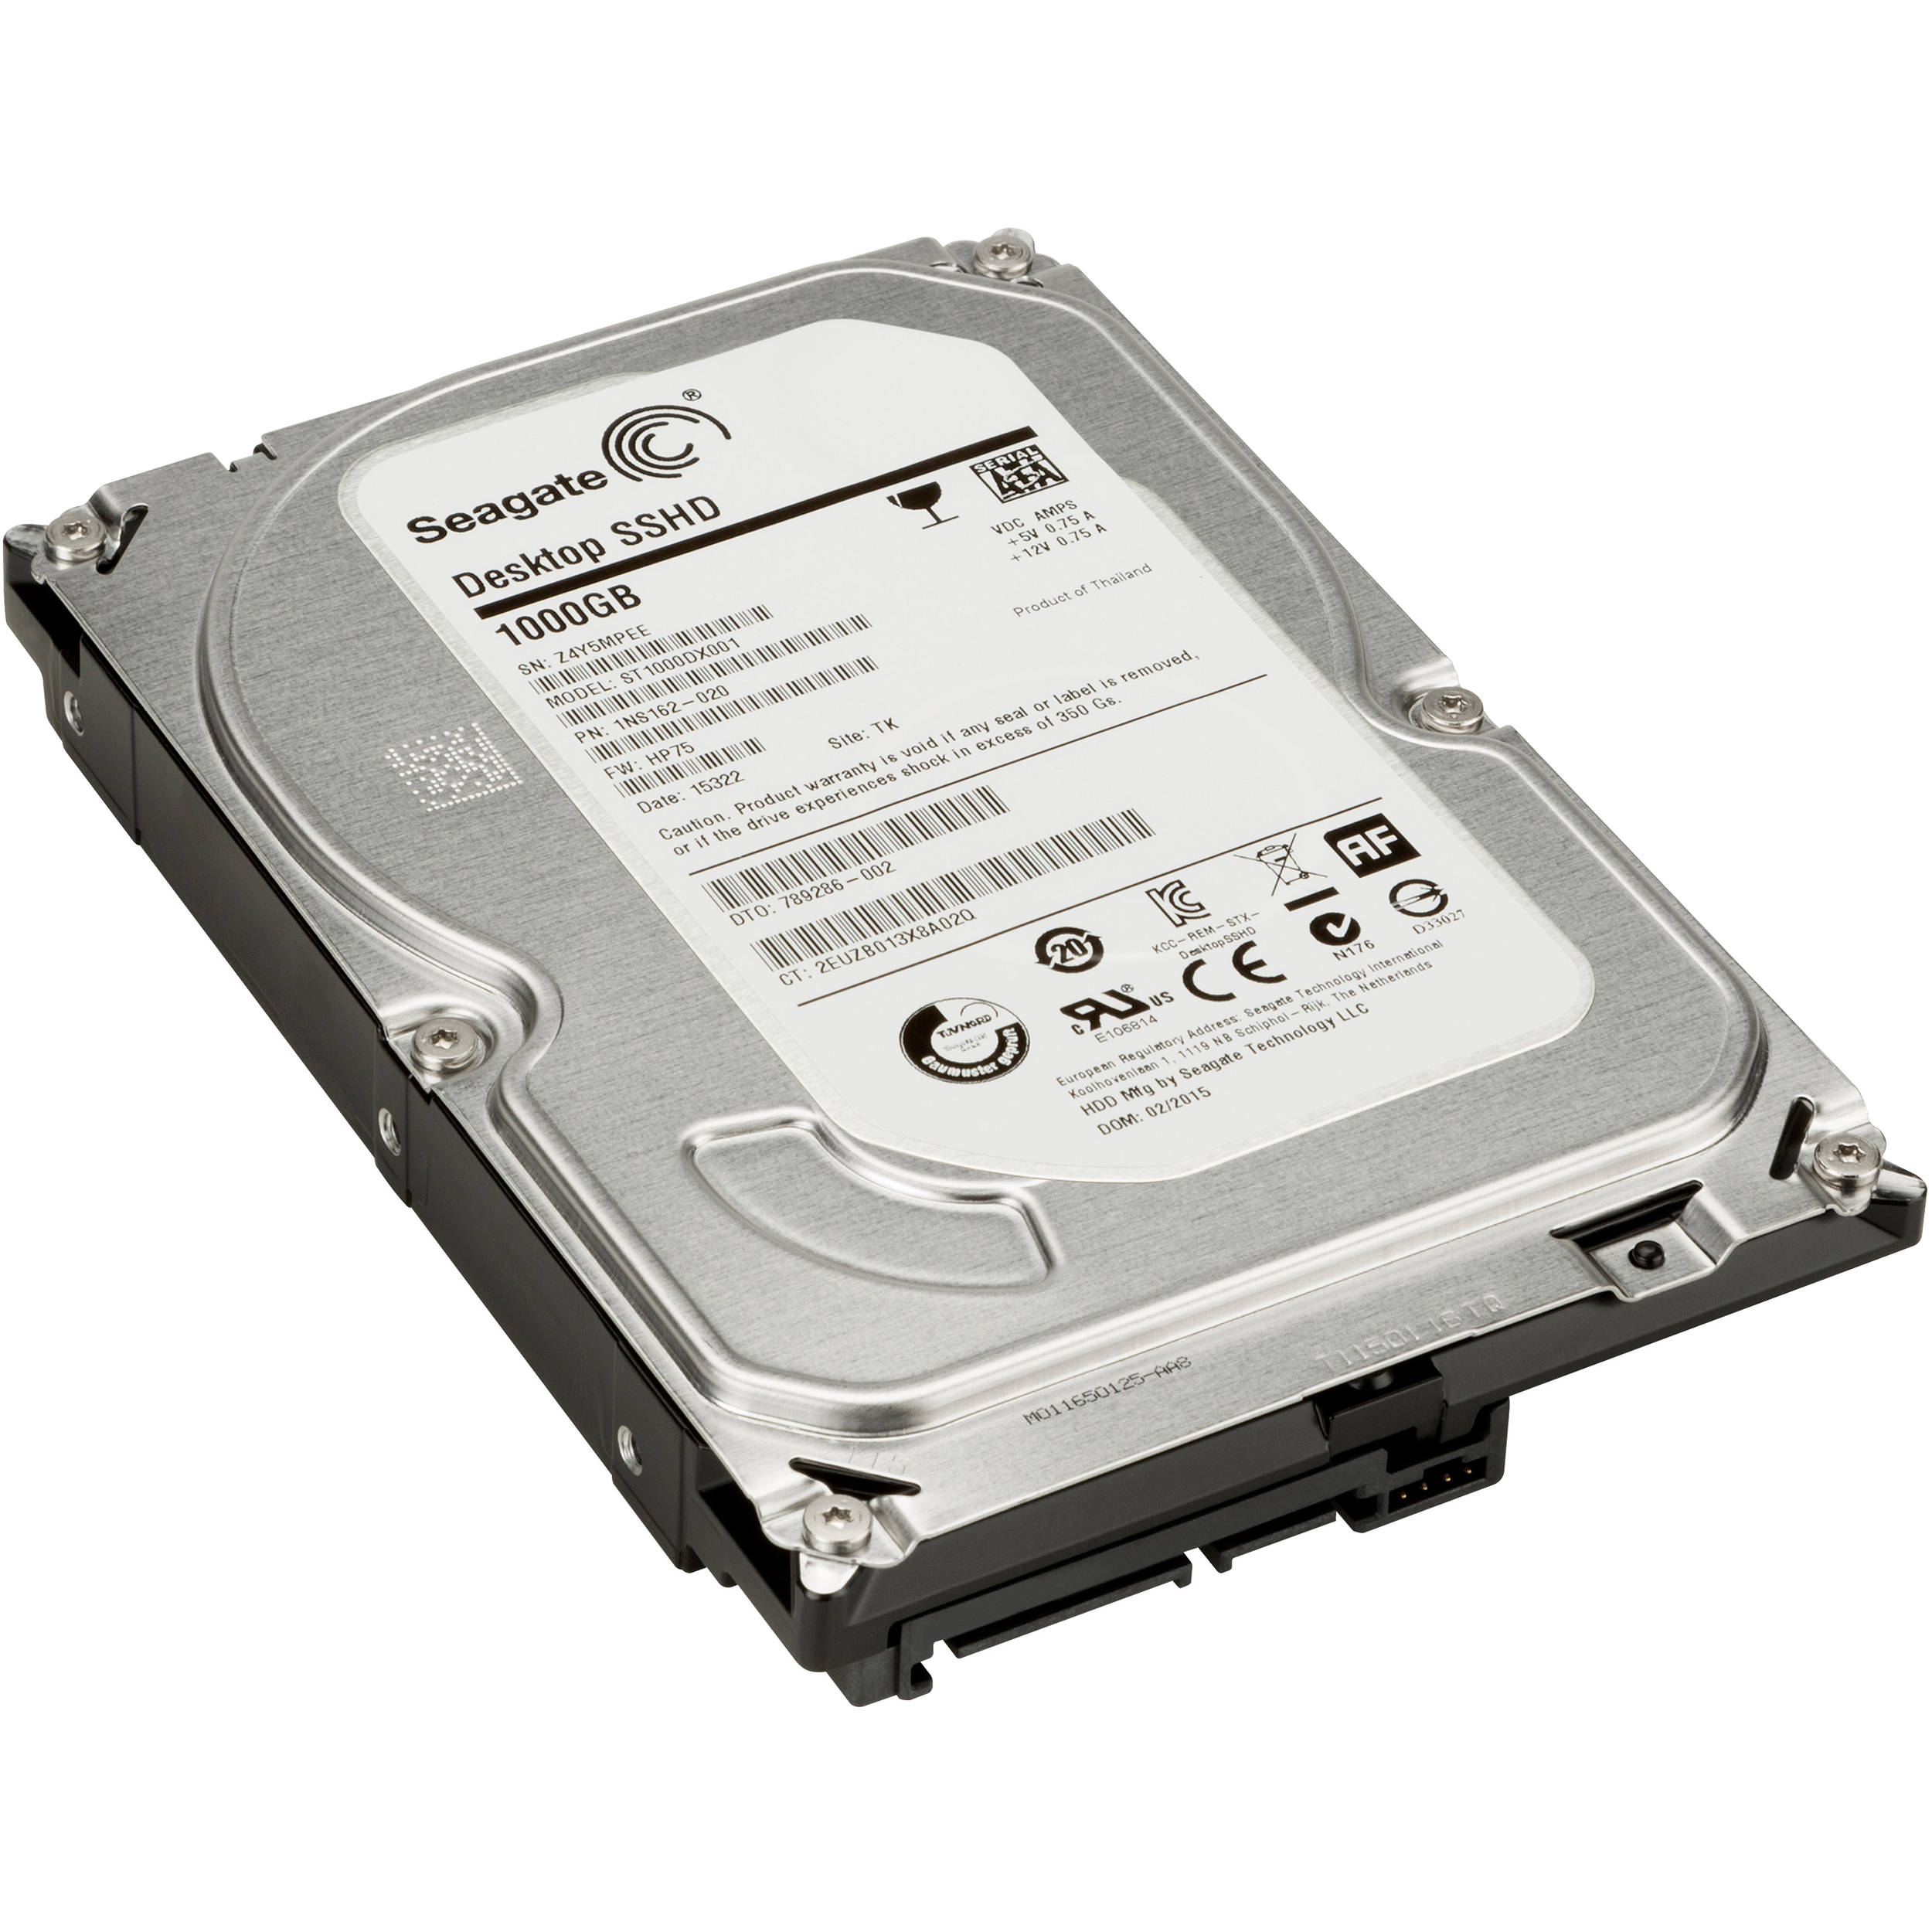 Image result for HDD